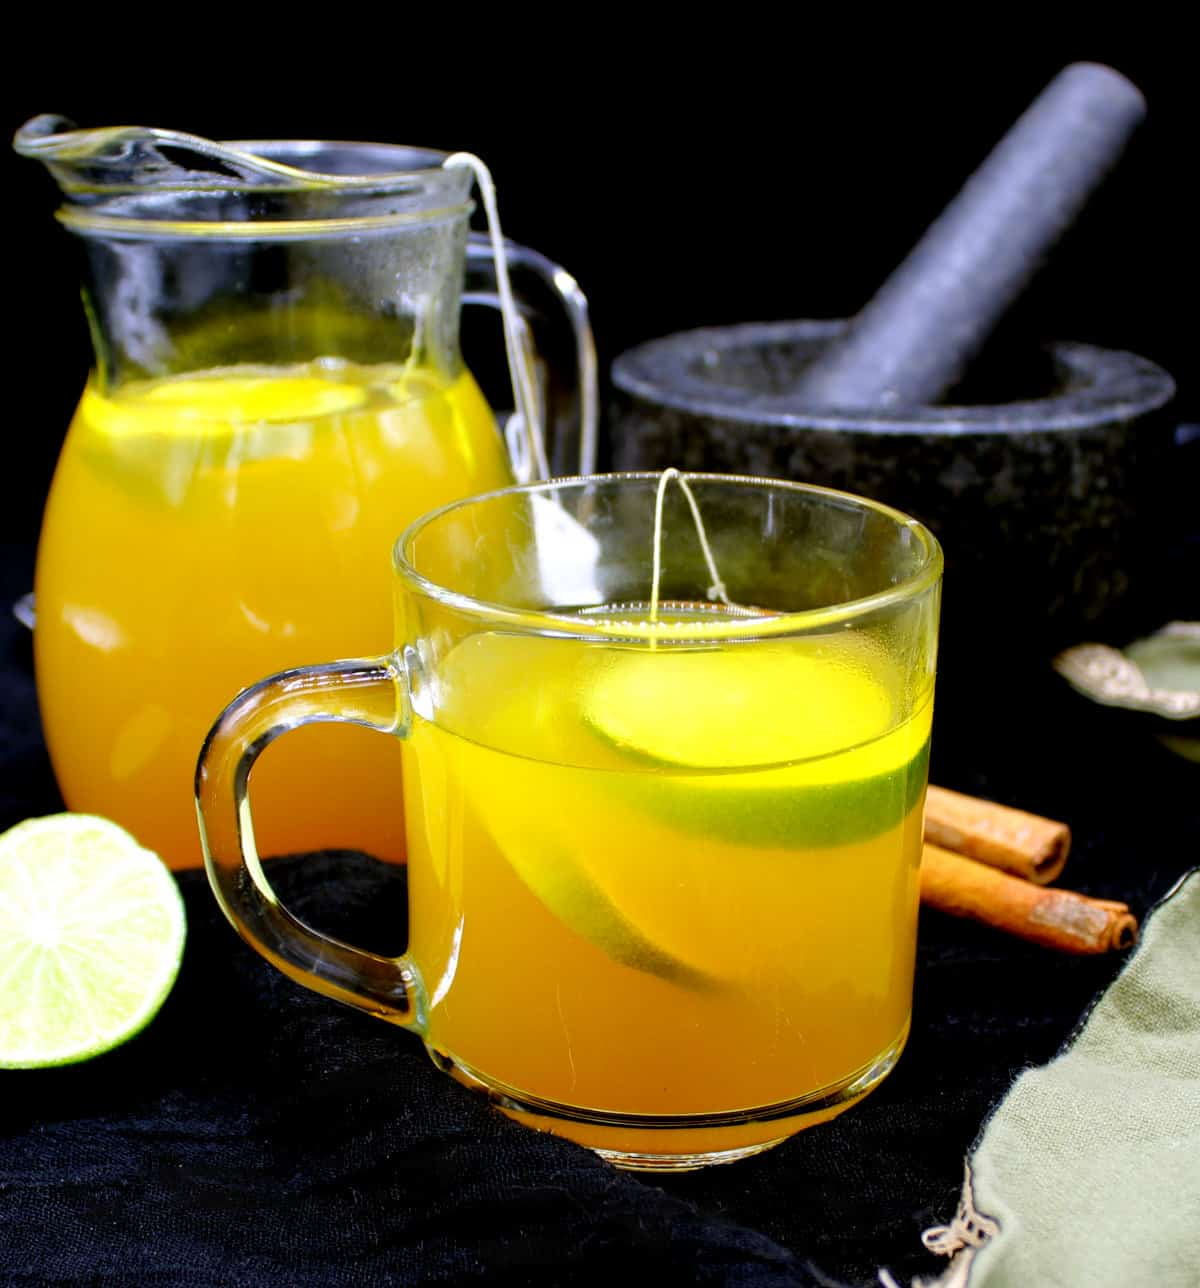 Ginger turmeric tea in a cup and a pitcher with ginger, cardamom, cinnamon, lemons and black pepper.